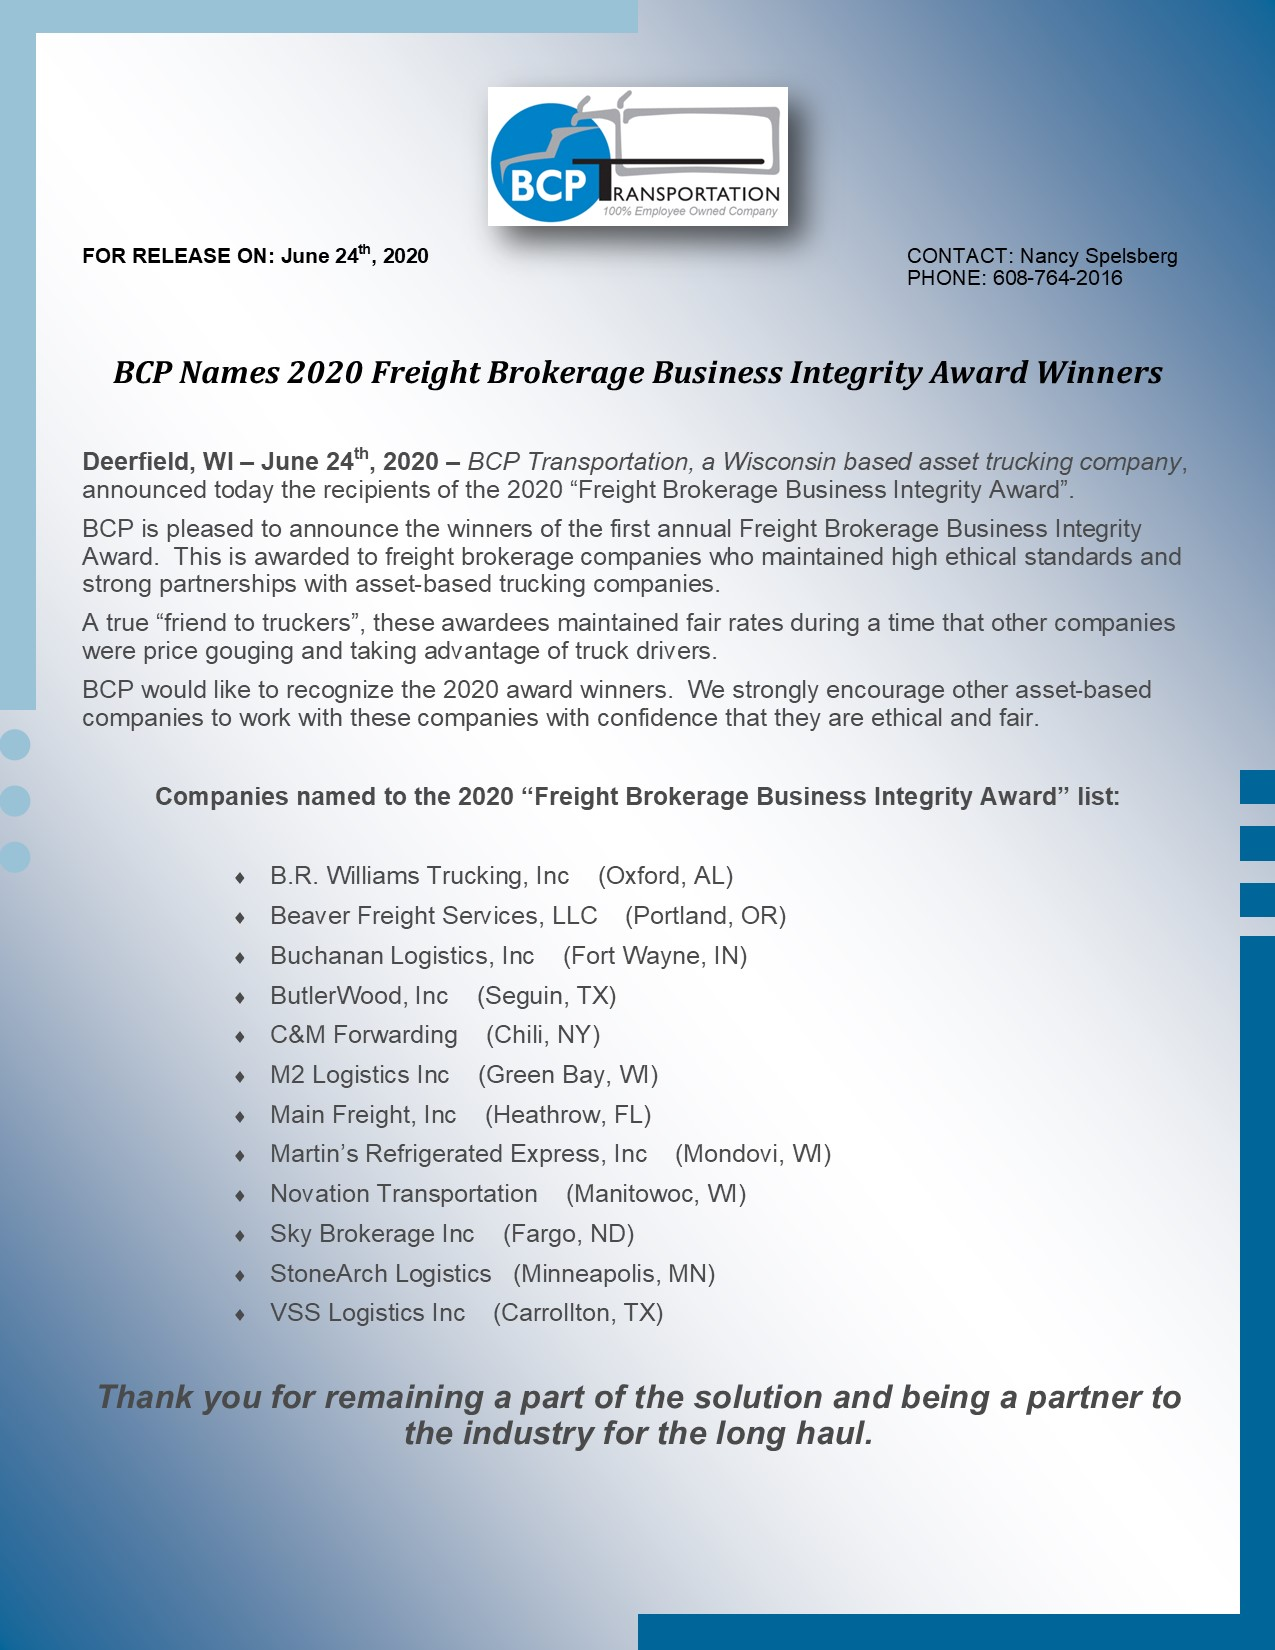 BCP Names 2020 Freight Brokerage Business Integrity Award Winners